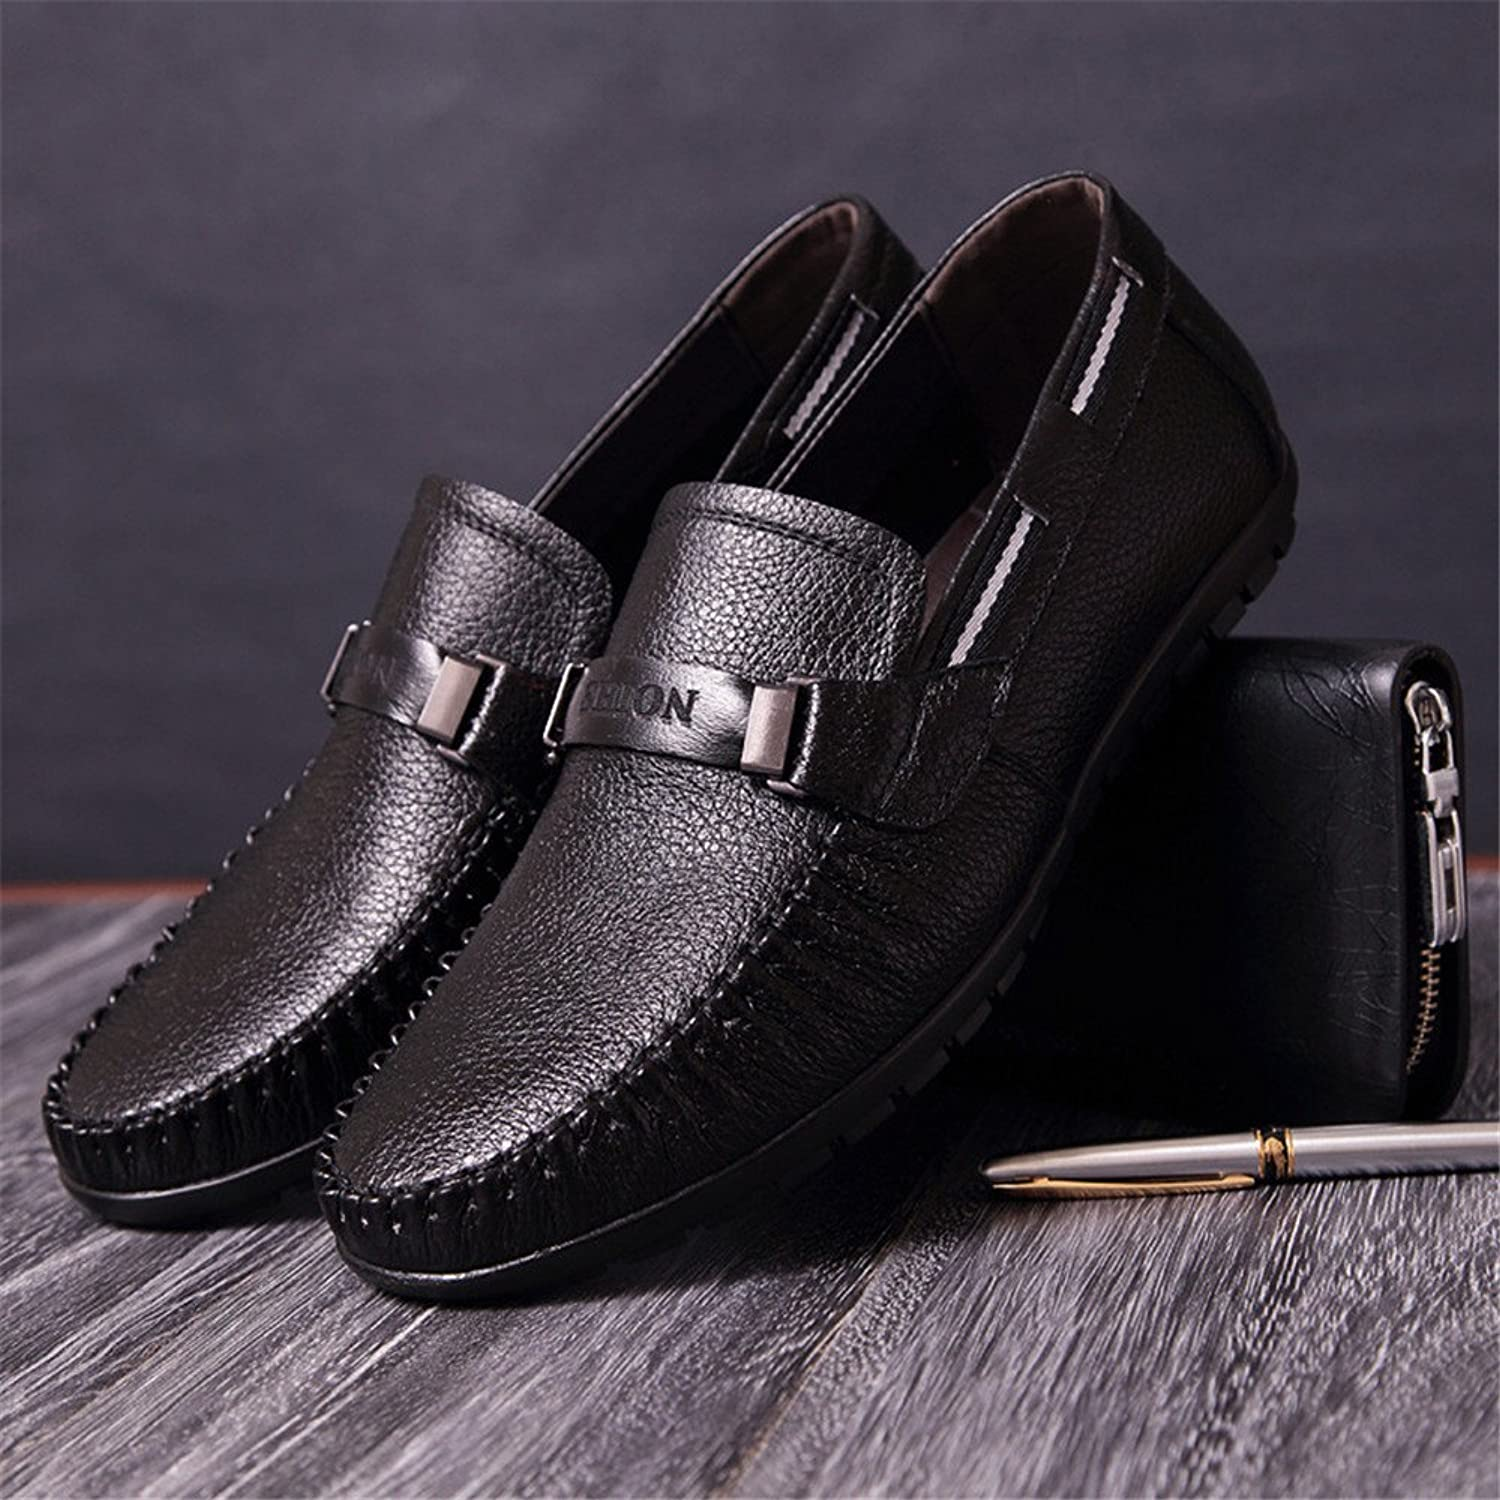 Men's casual fashion leather shoes, leather men's bean shoes, sports casual shoes,black,Forty-one